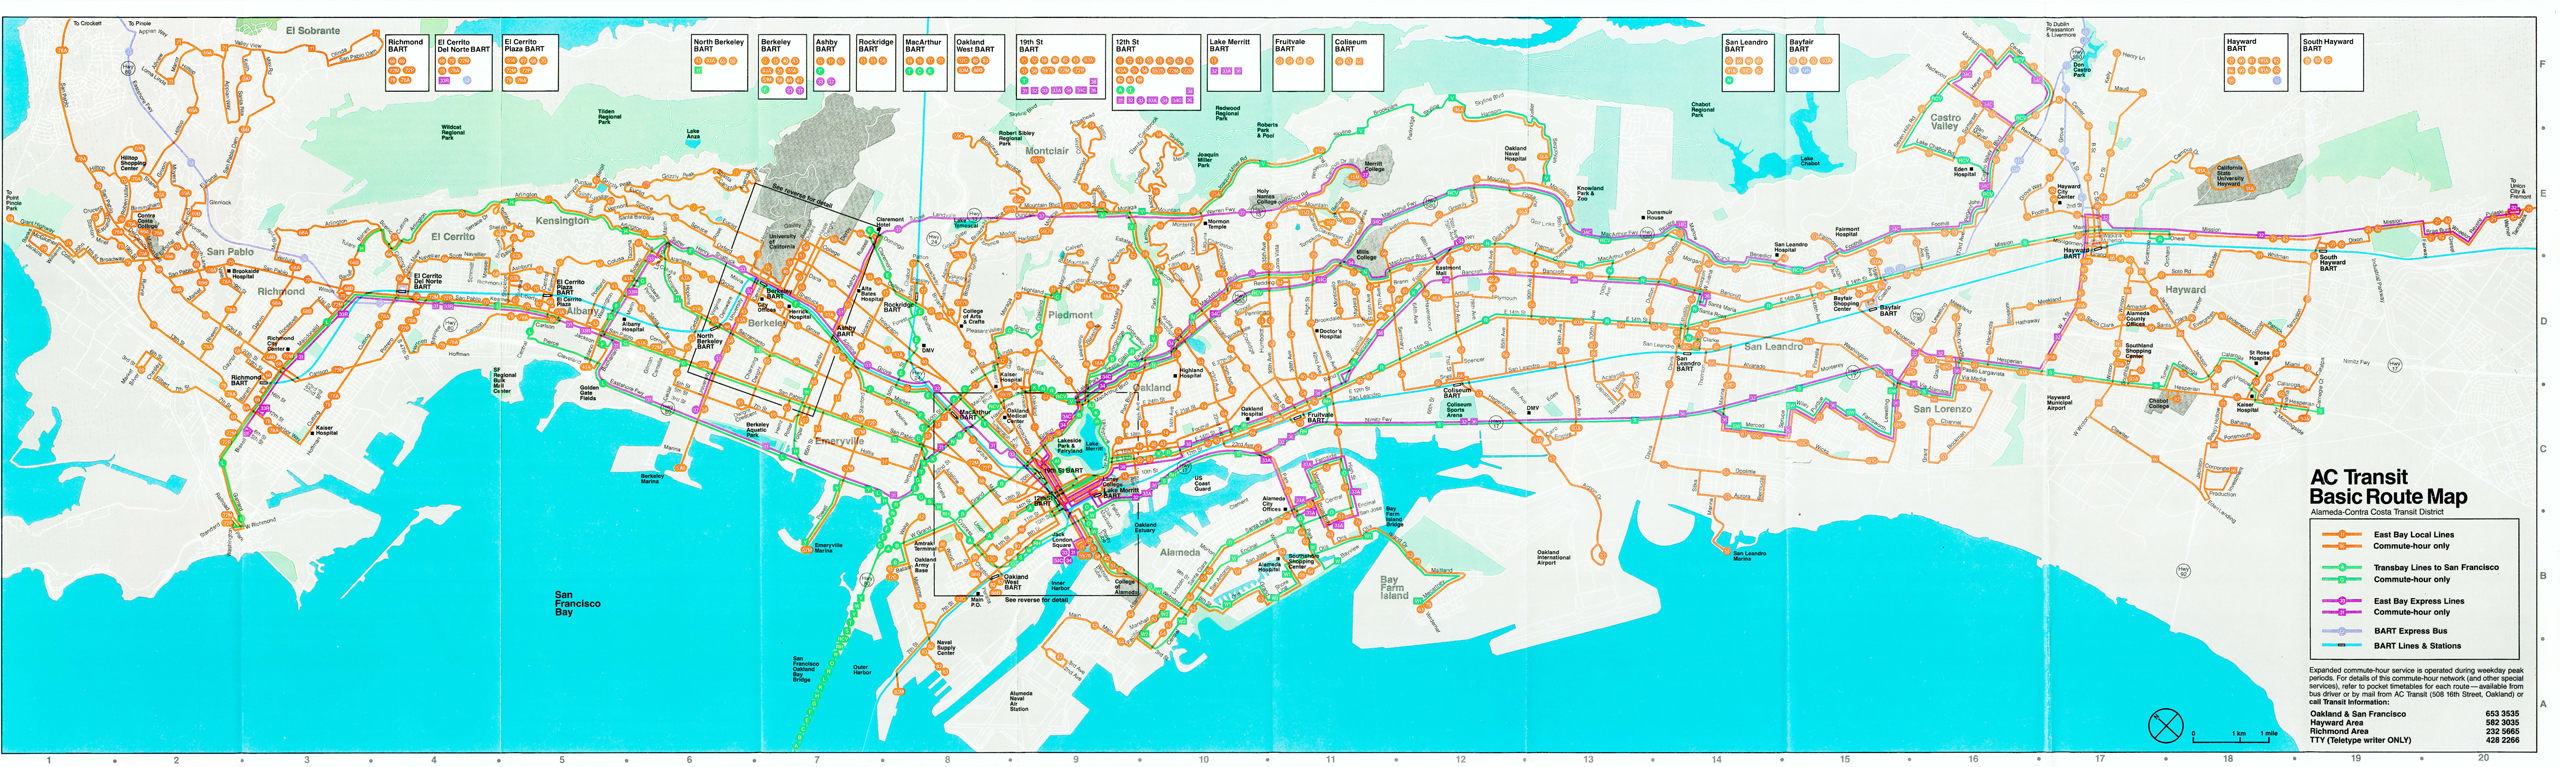 Maps AC Transit - Transit map